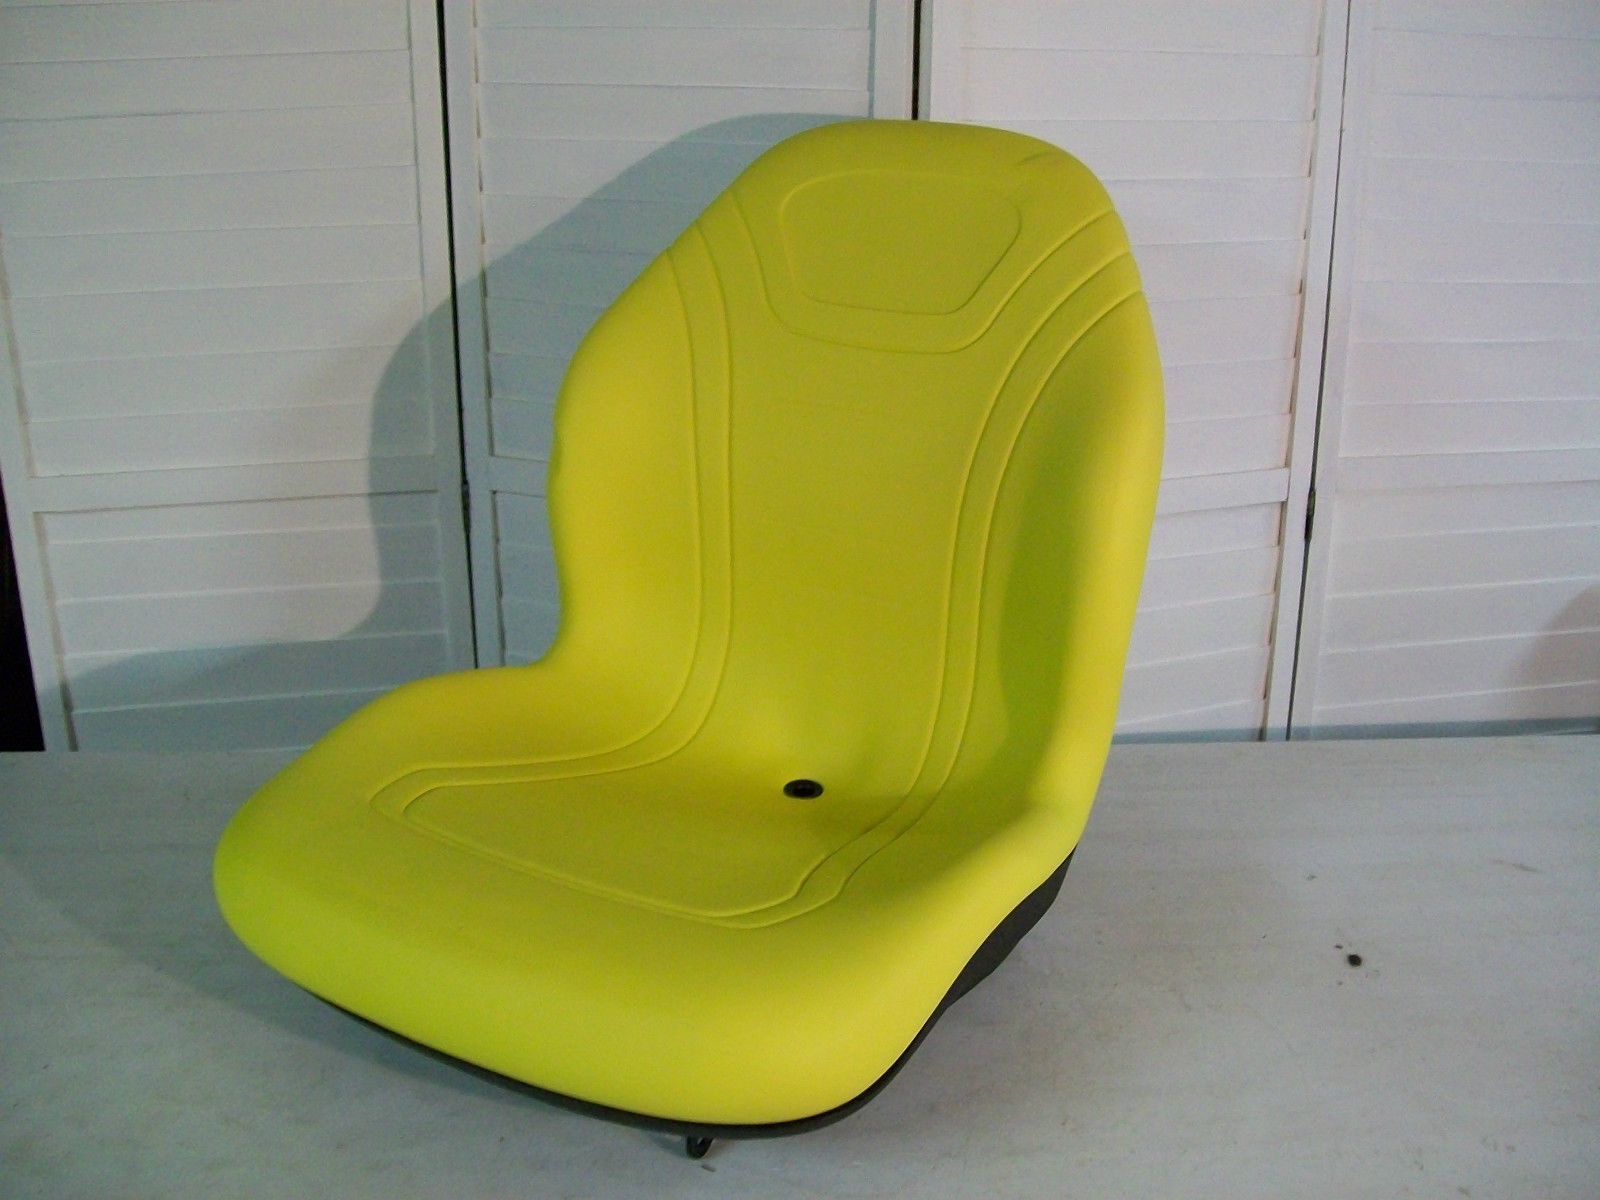 YELLOW SEAT JOHN DEERE 425, 445, 455, 4100, 4110, 4115, GARDEN, COMPACT  TRACTORS W/BRACKET REPLACES AM879503 #DD   Seat Warehouse